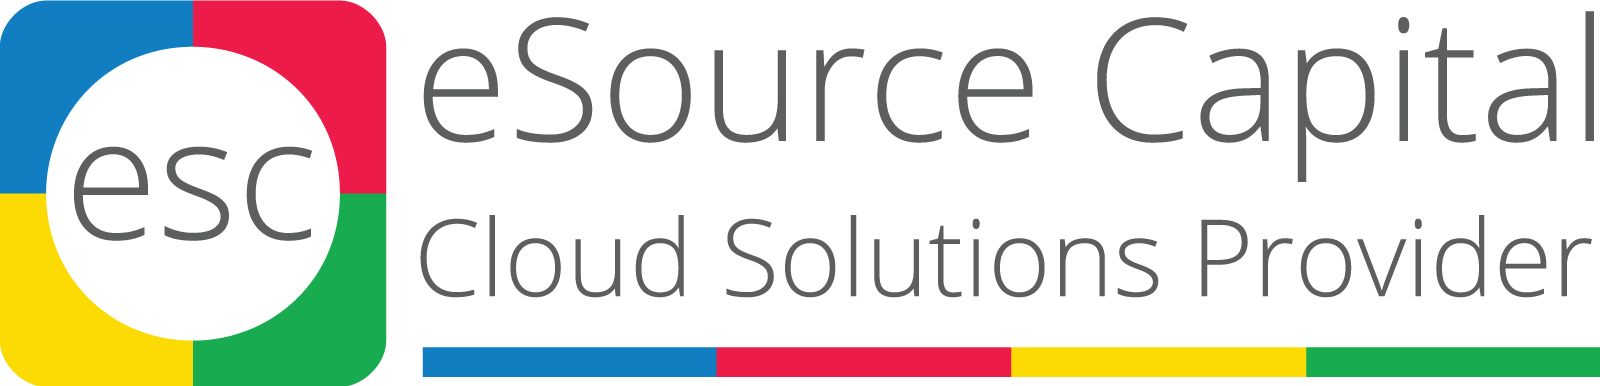 eSource Capital Logo Cloud Solutions Providers Latinoamérica